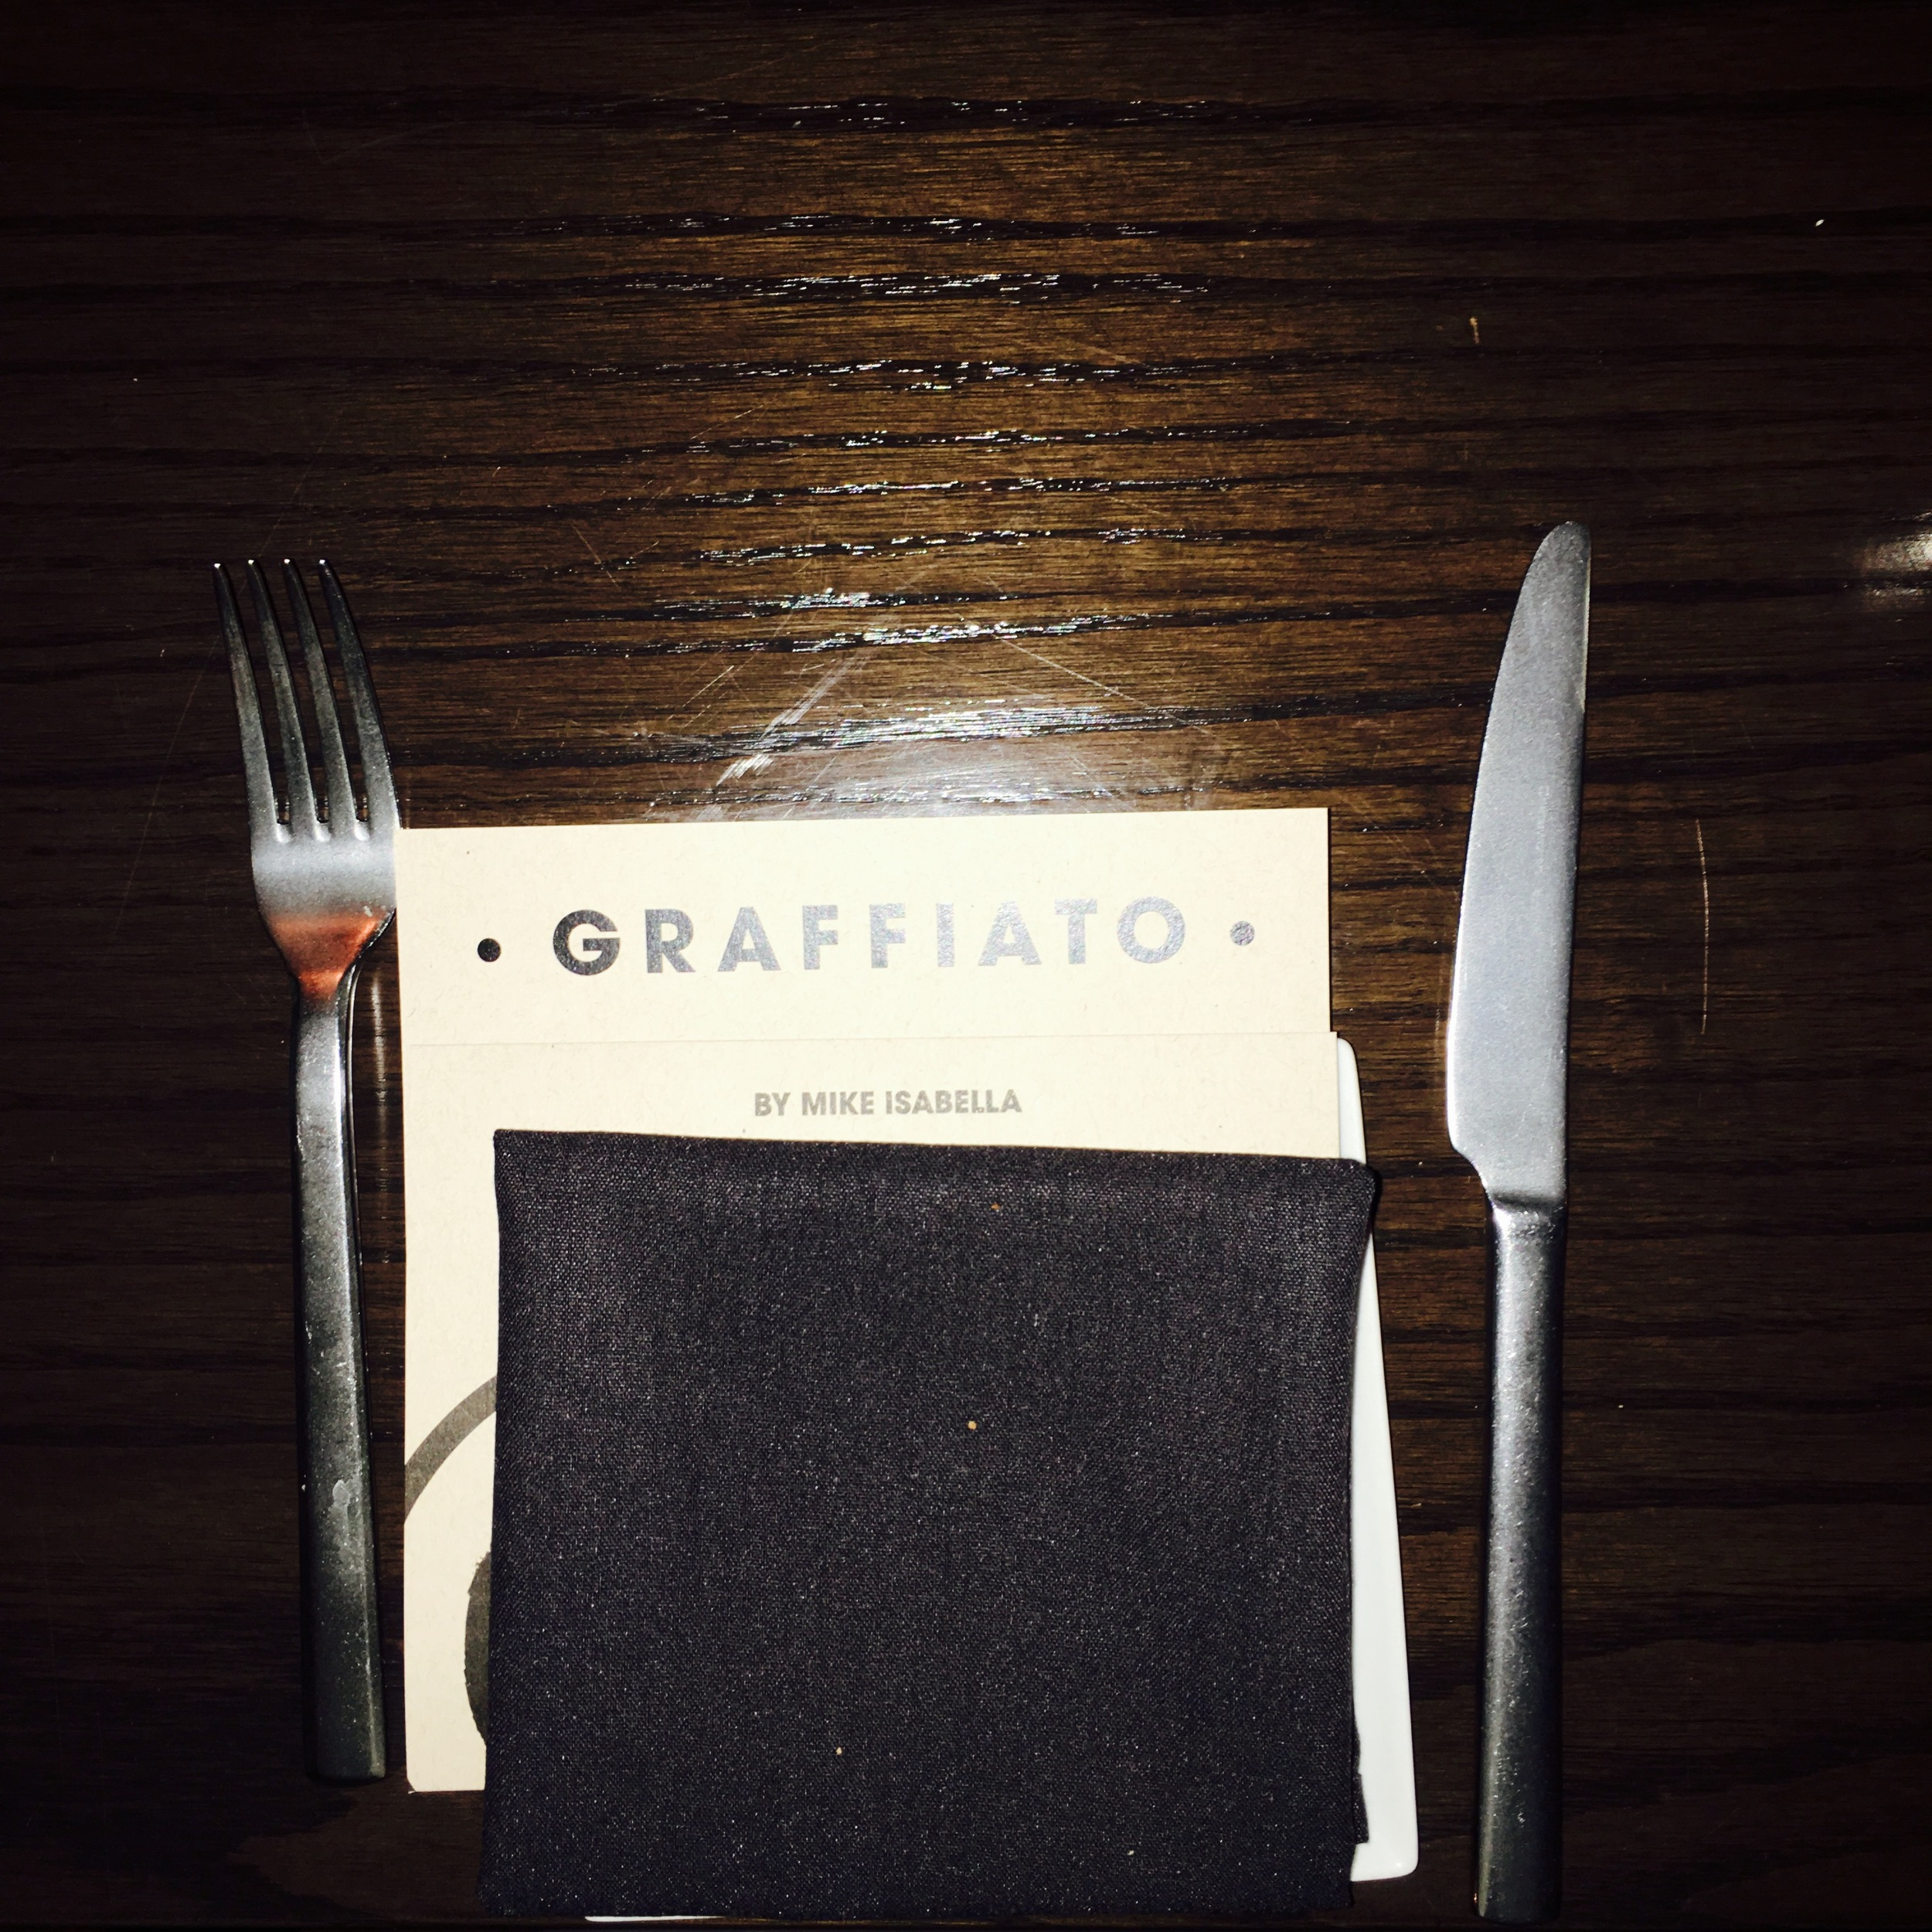 Saturday evening we dined at Mike Isabella's  Graffiato.  We were eating well.